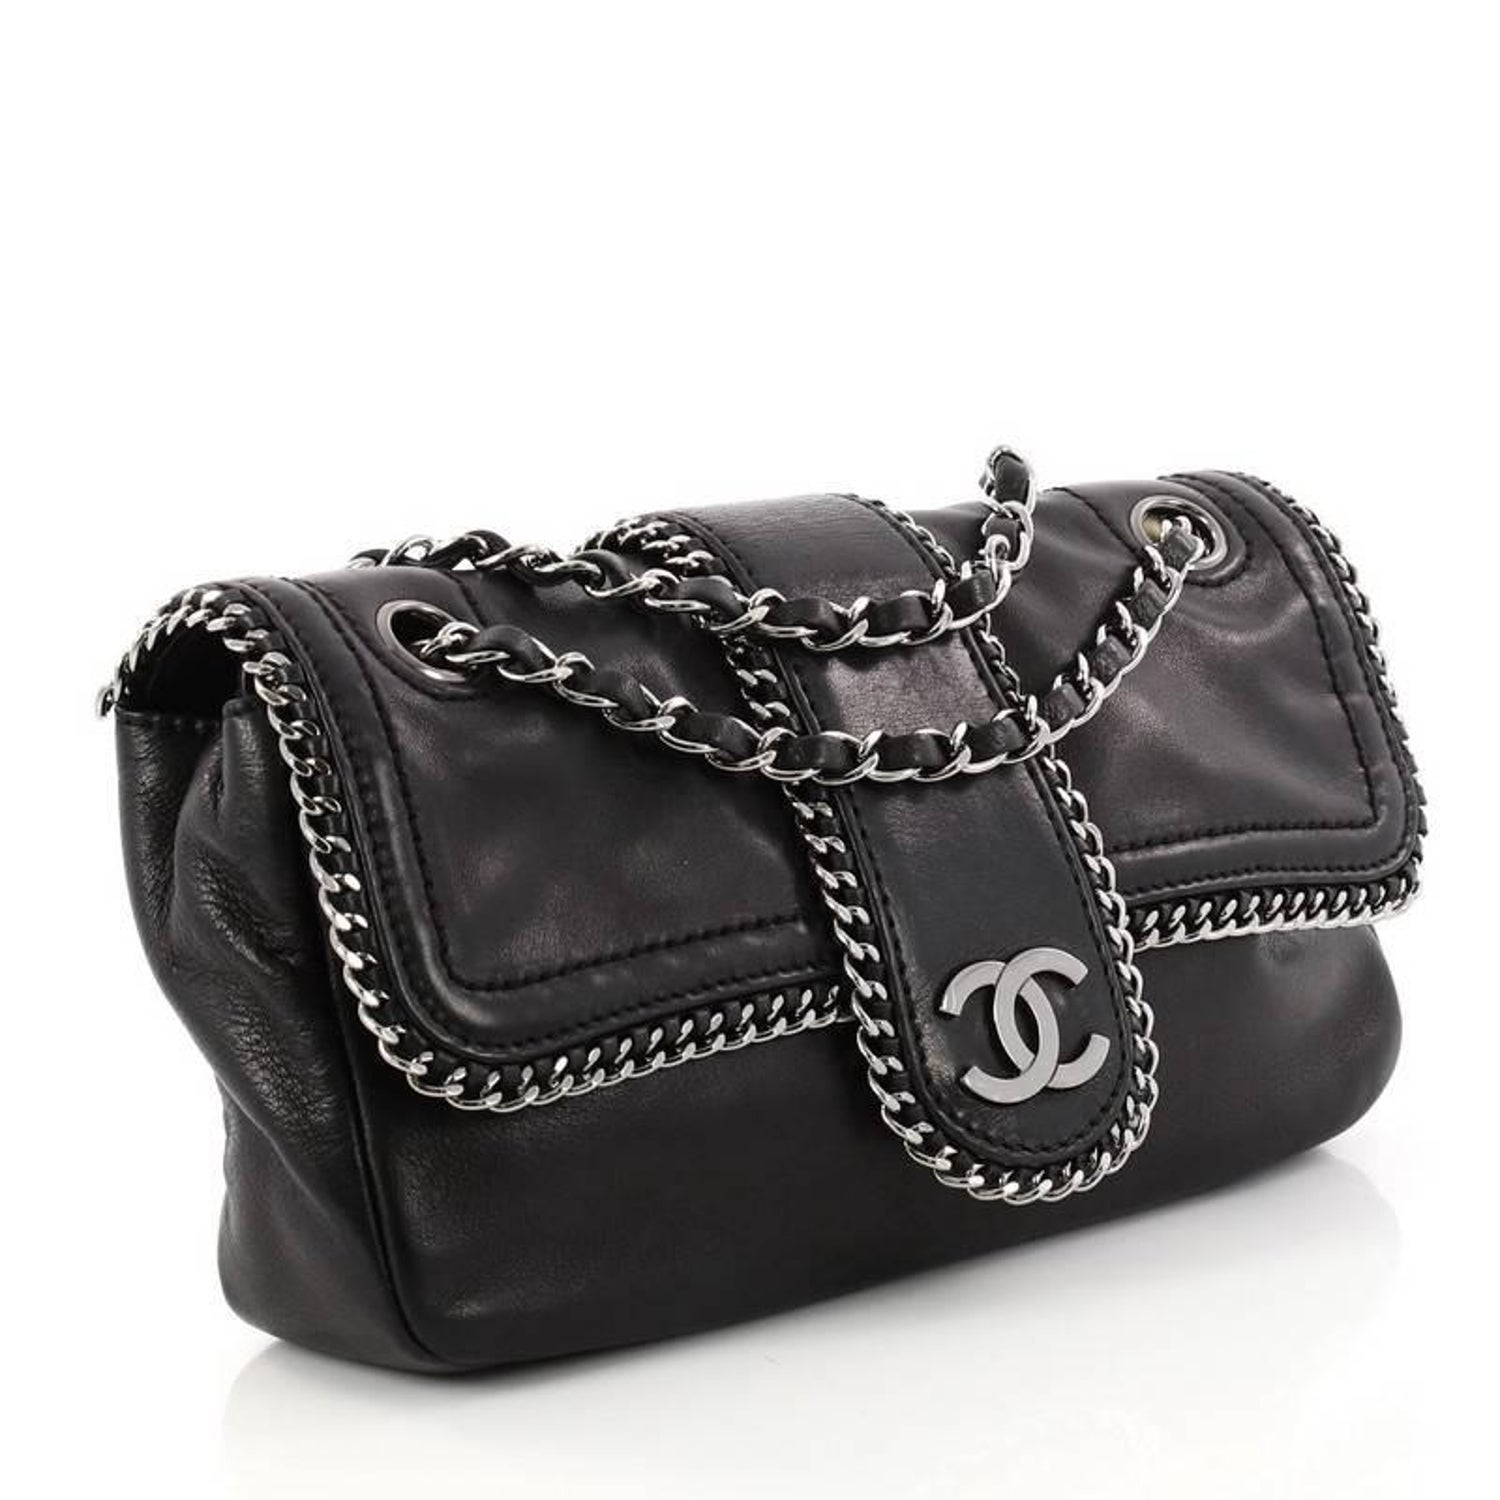 52604d69a76e7a Chanel Madison Flap Bag Leather Medium at 1stdibs